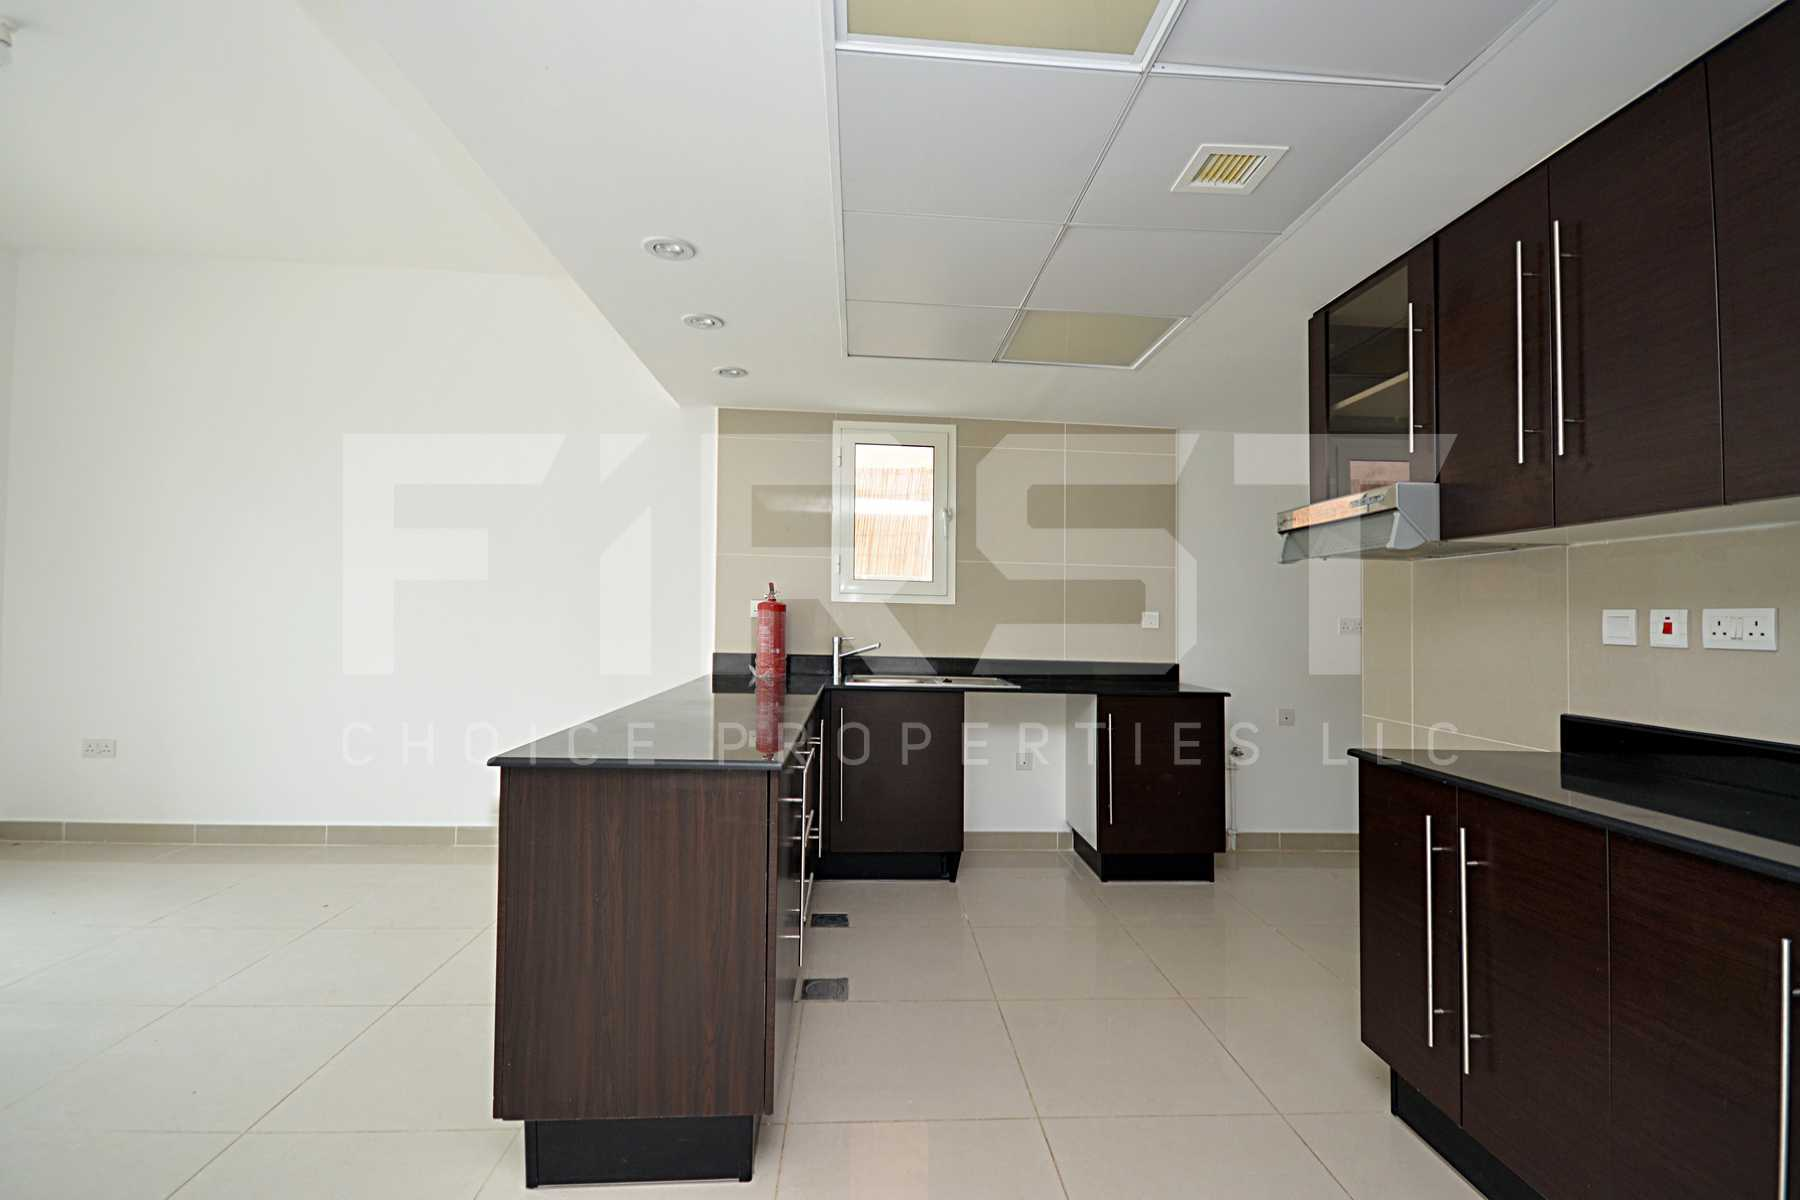 4 Bedroom Villa in Al Reef Villas Al Reef Abu Dhabi UAE 265.5 sq.m 2858 sq.ft (6).jpg